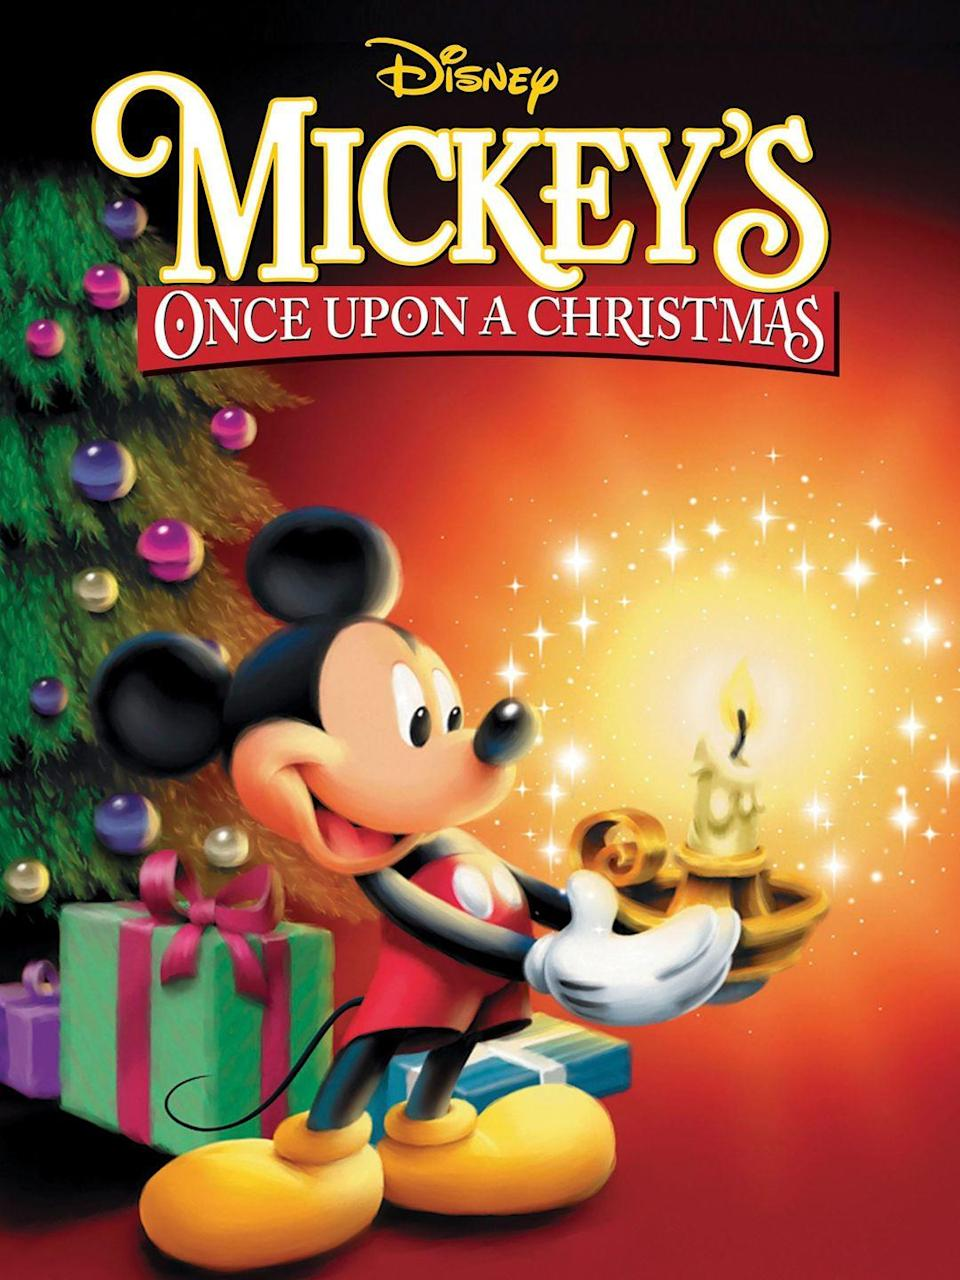 """<p>This holiday movie includes not one, but <em>three,</em> magical tales featuring Mickey and all his friends.</p><p><a class=""""link rapid-noclick-resp"""" href=""""https://www.amazon.com/dp/B00D8GZPKS?tag=syn-yahoo-20&ascsubtag=%5Bartid%7C10050.g.5060%5Bsrc%7Cyahoo-us"""" rel=""""nofollow noopener"""" target=""""_blank"""" data-ylk=""""slk:STREAM IT ON PRIME"""">STREAM IT ON PRIME</a></p><p><a class=""""link rapid-noclick-resp"""" href=""""https://go.redirectingat.com?id=74968X1596630&url=https%3A%2F%2Fwww.disneyplus.com%2Fmovies%2Fmickeys-once-upon-a-christmas%2F72SAF9iLzQlT&sref=https%3A%2F%2Fwww.countryliving.com%2Flife%2Fentertainment%2Fg5060%2Fbest-disney-christmas-movies%2F"""" rel=""""nofollow noopener"""" target=""""_blank"""" data-ylk=""""slk:STREAM IT ON DISNEY+"""">STREAM IT ON DISNEY+</a><br></p>"""